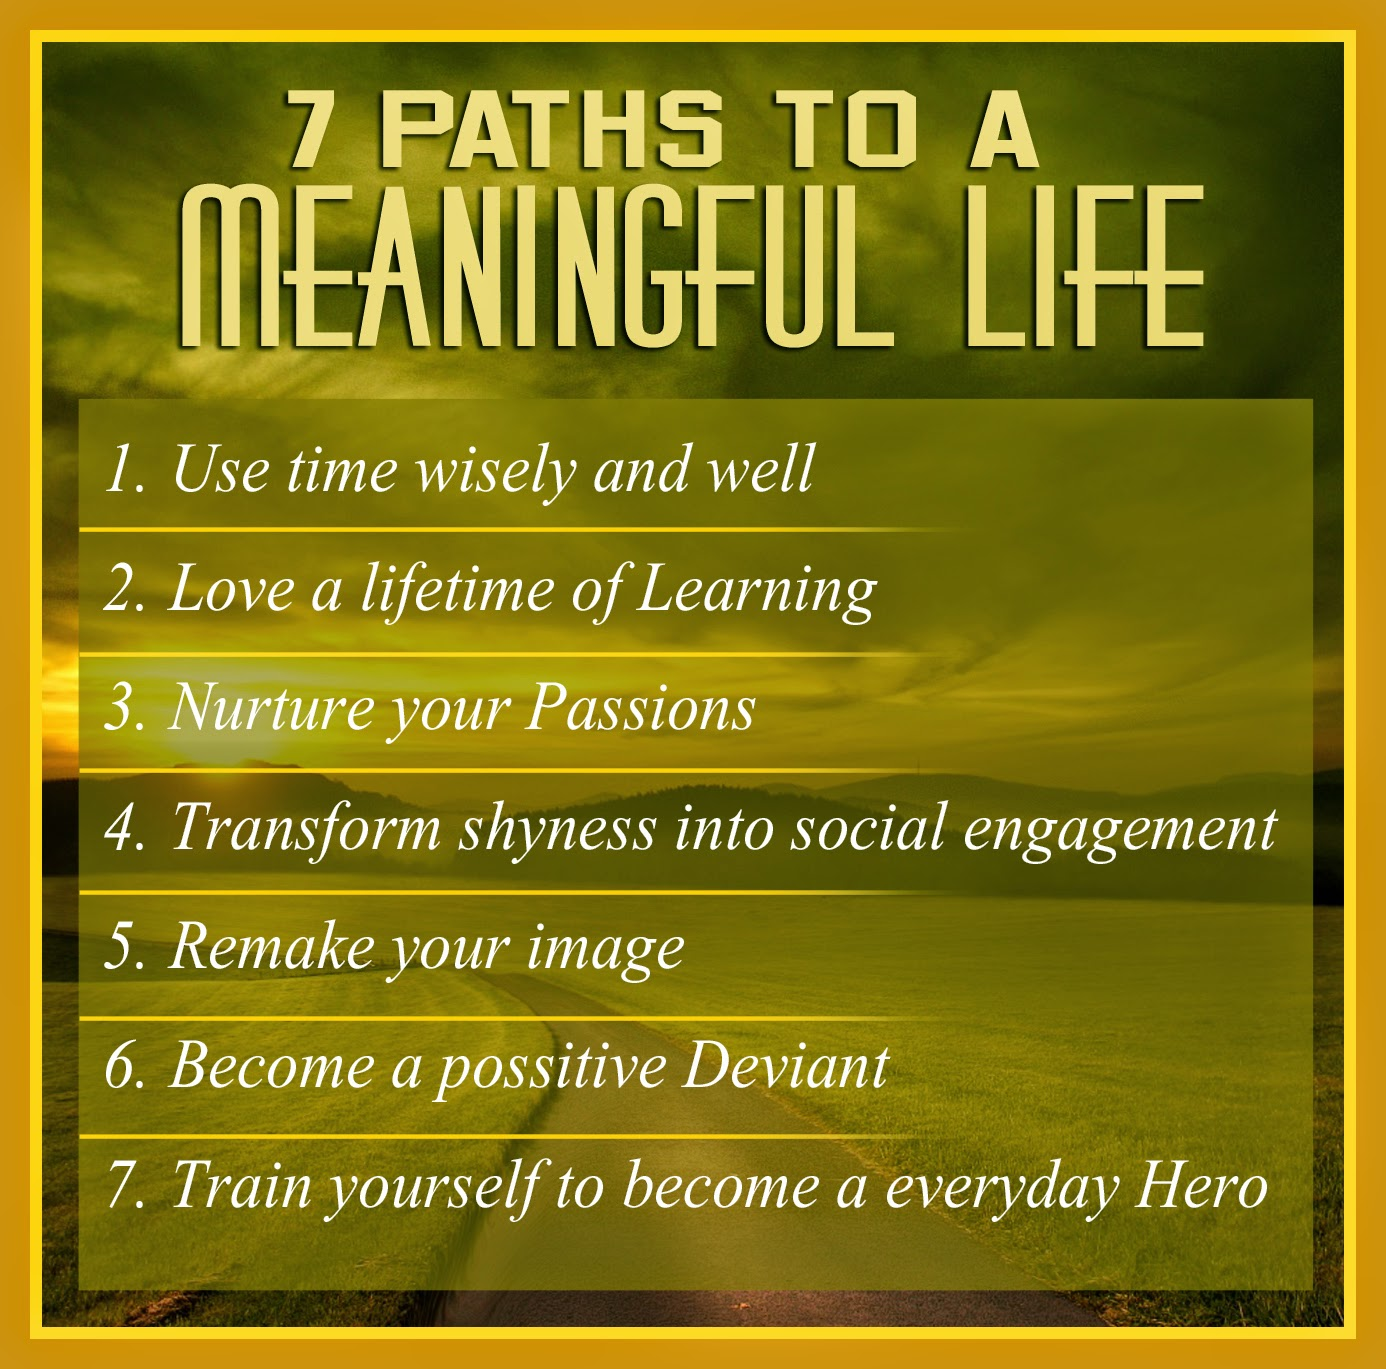 Meaningful Life Quotes Motivational Quotes  7 Paths To A Meaningful Life  Naveengfx